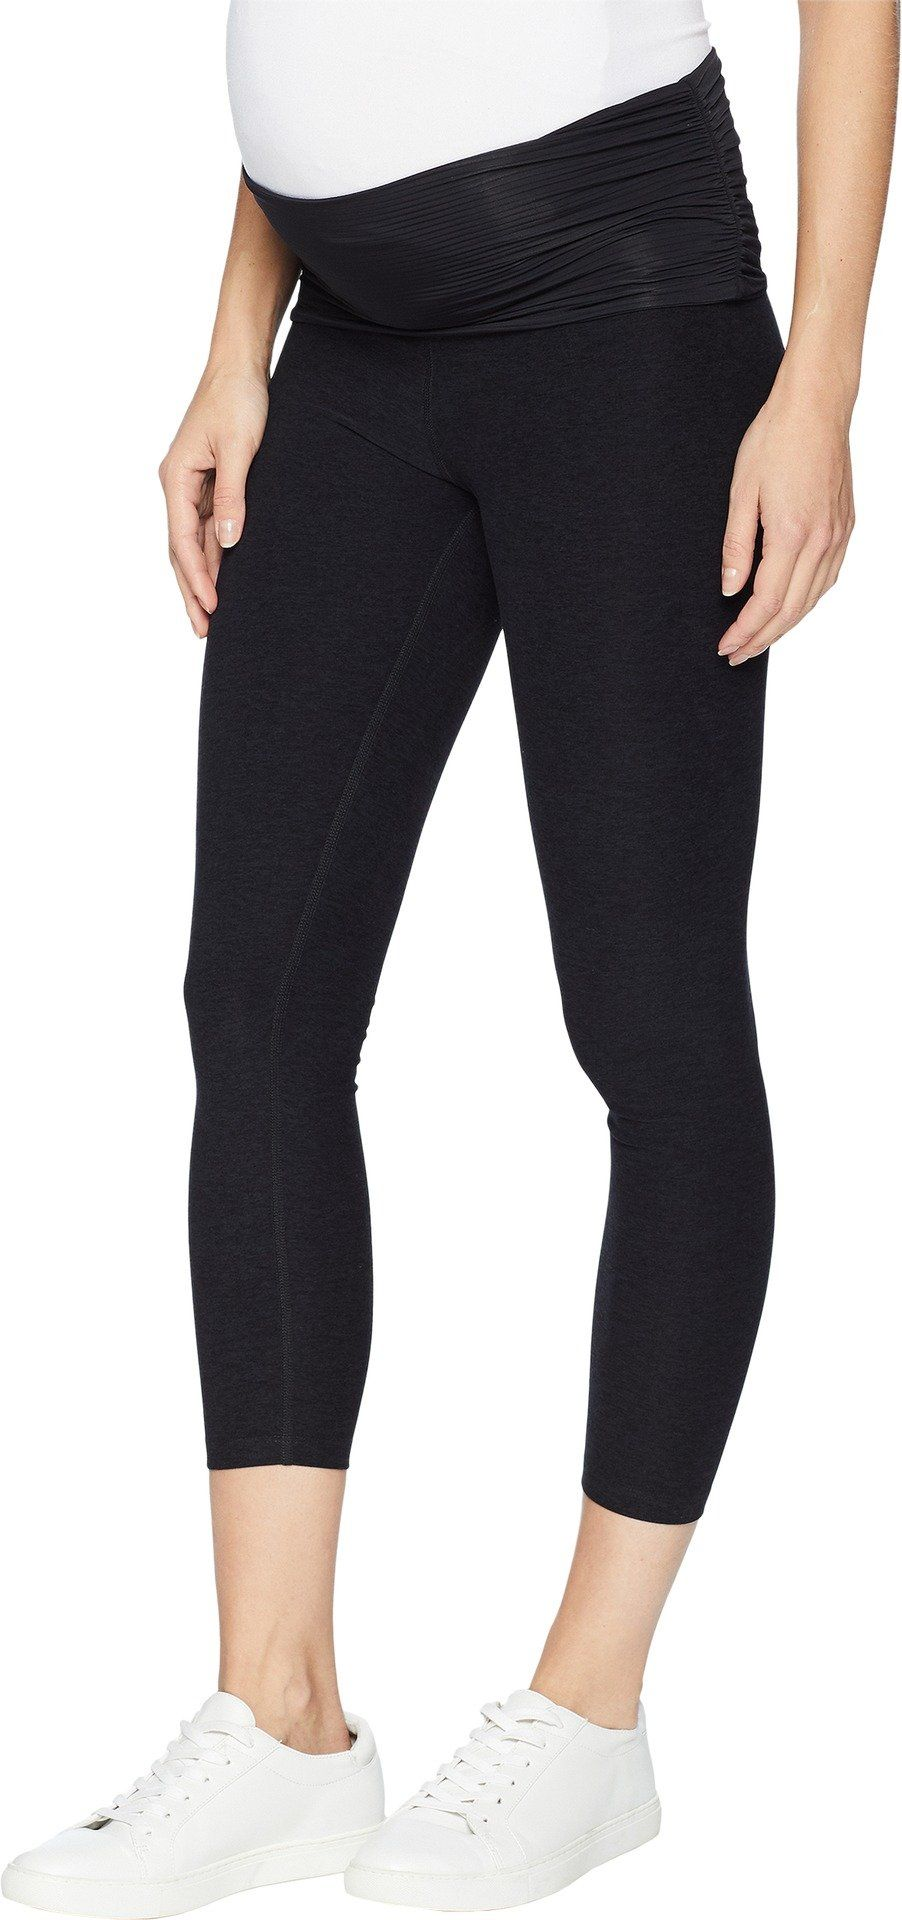 7b2ed71336a1c pregnancy workout - Beyond Yoga Womens Fold Down Maternity Capri Leggings  Darkest Night Medium 21 * Take a look at this wonderful product.